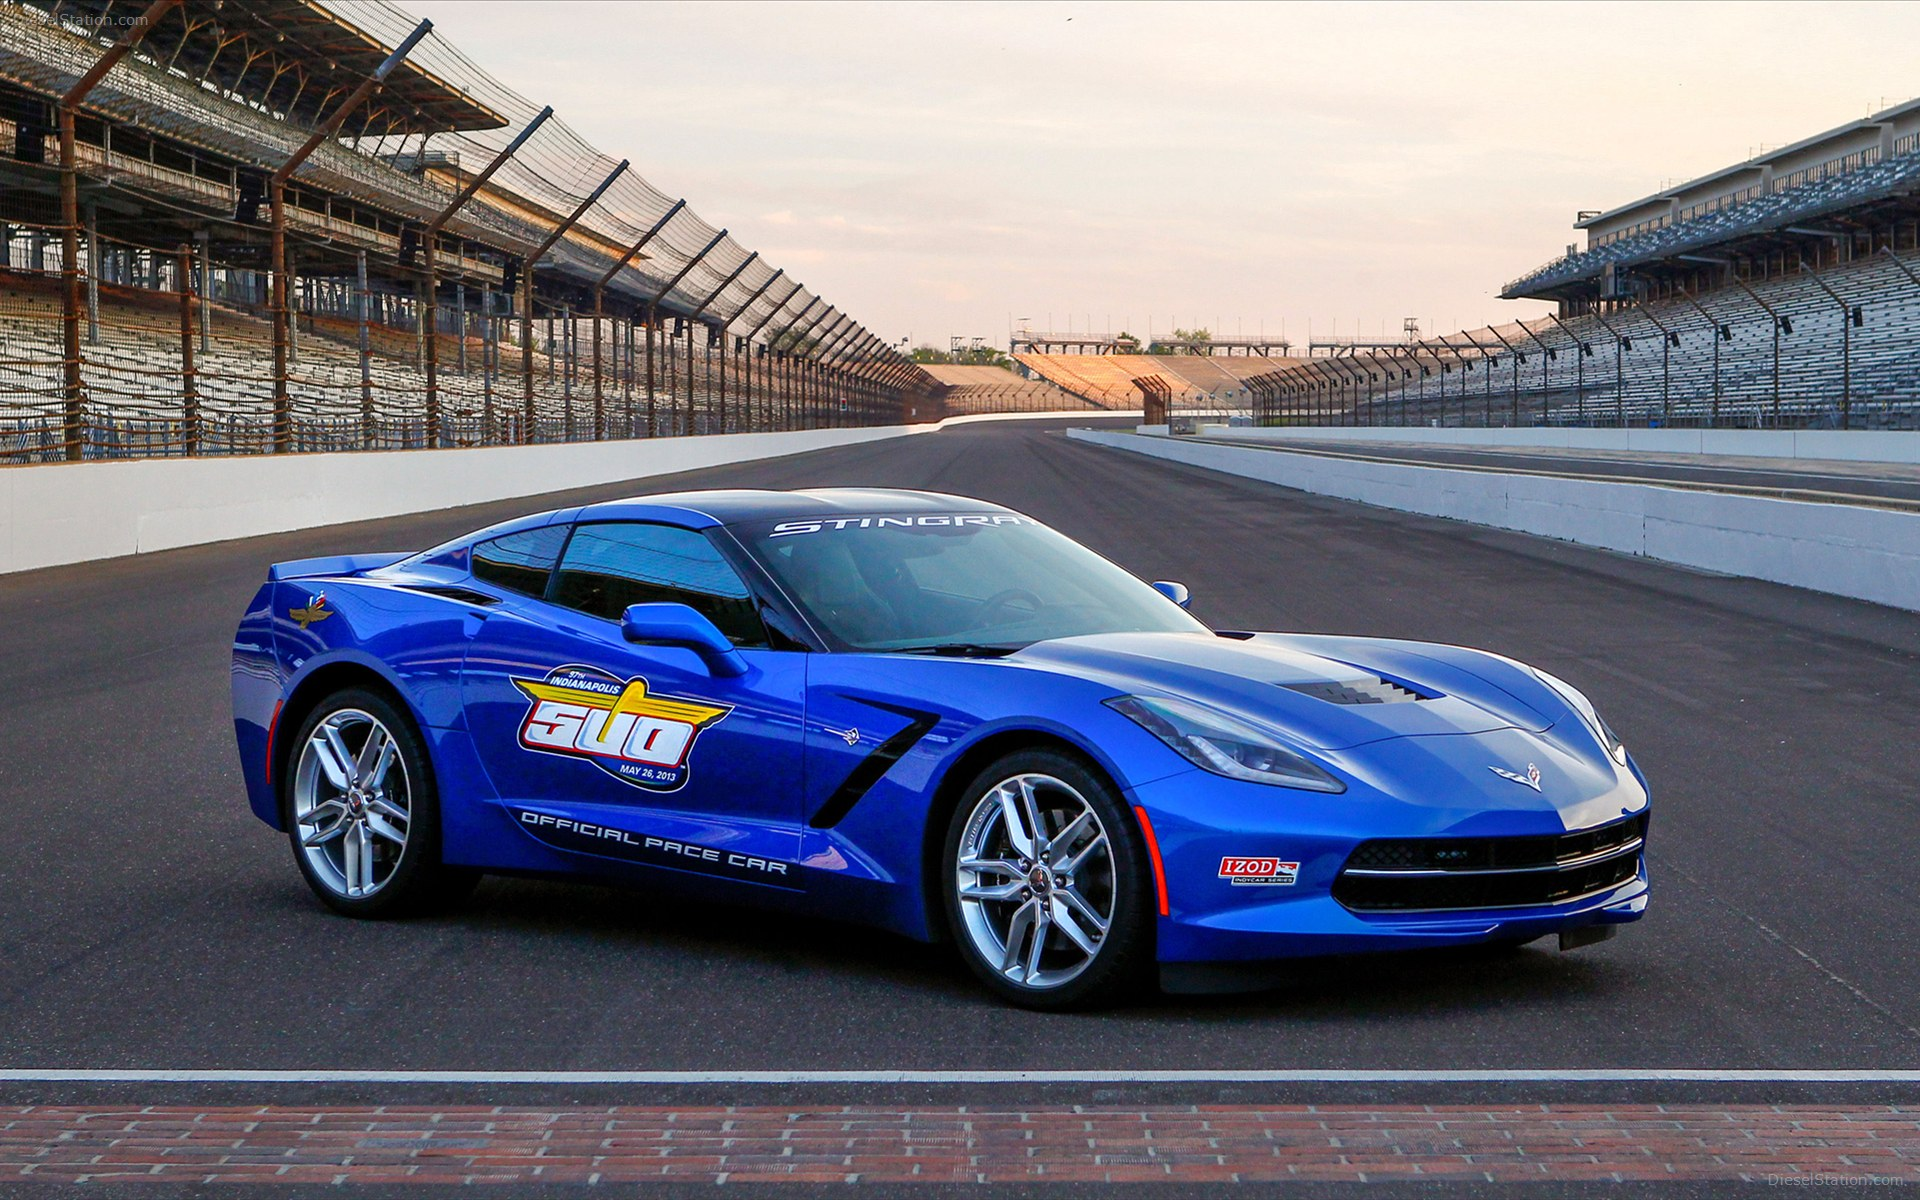 2019 Chevrolet Corvette Stingray Indy 500 Pace Car photo - 6